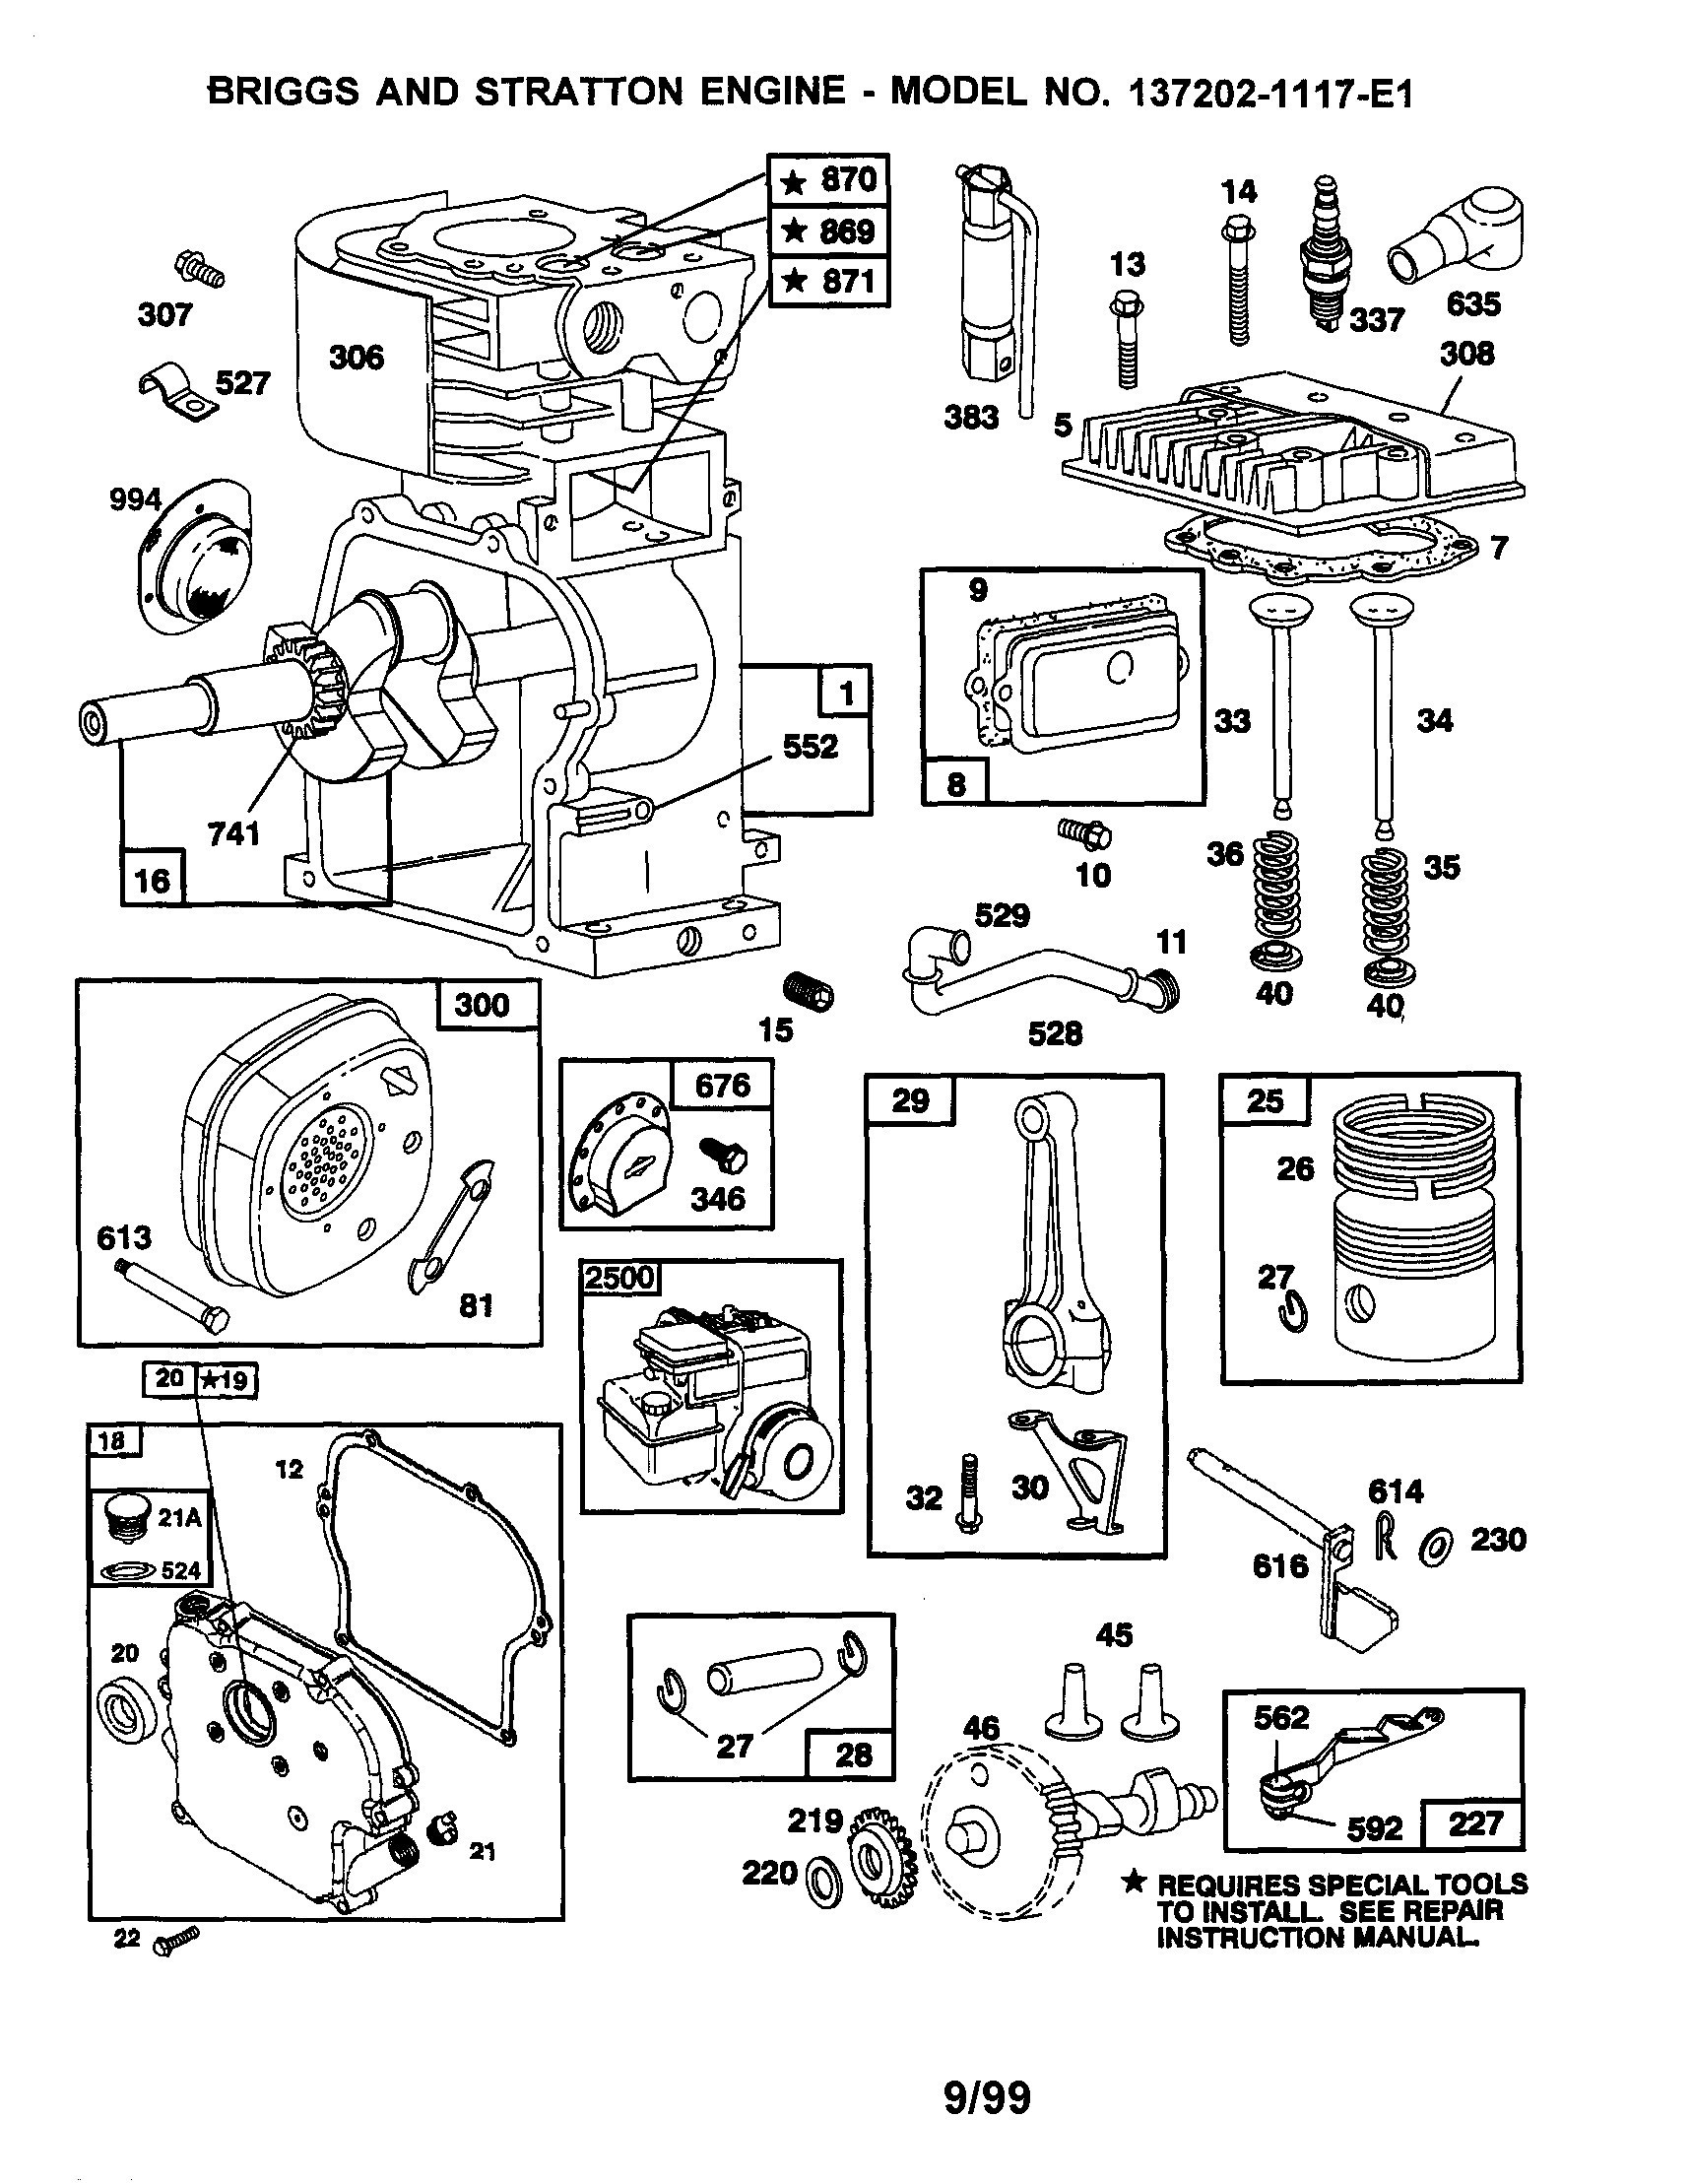 Briggs And Stratton 500 Series Engine Diagram Perfect 11